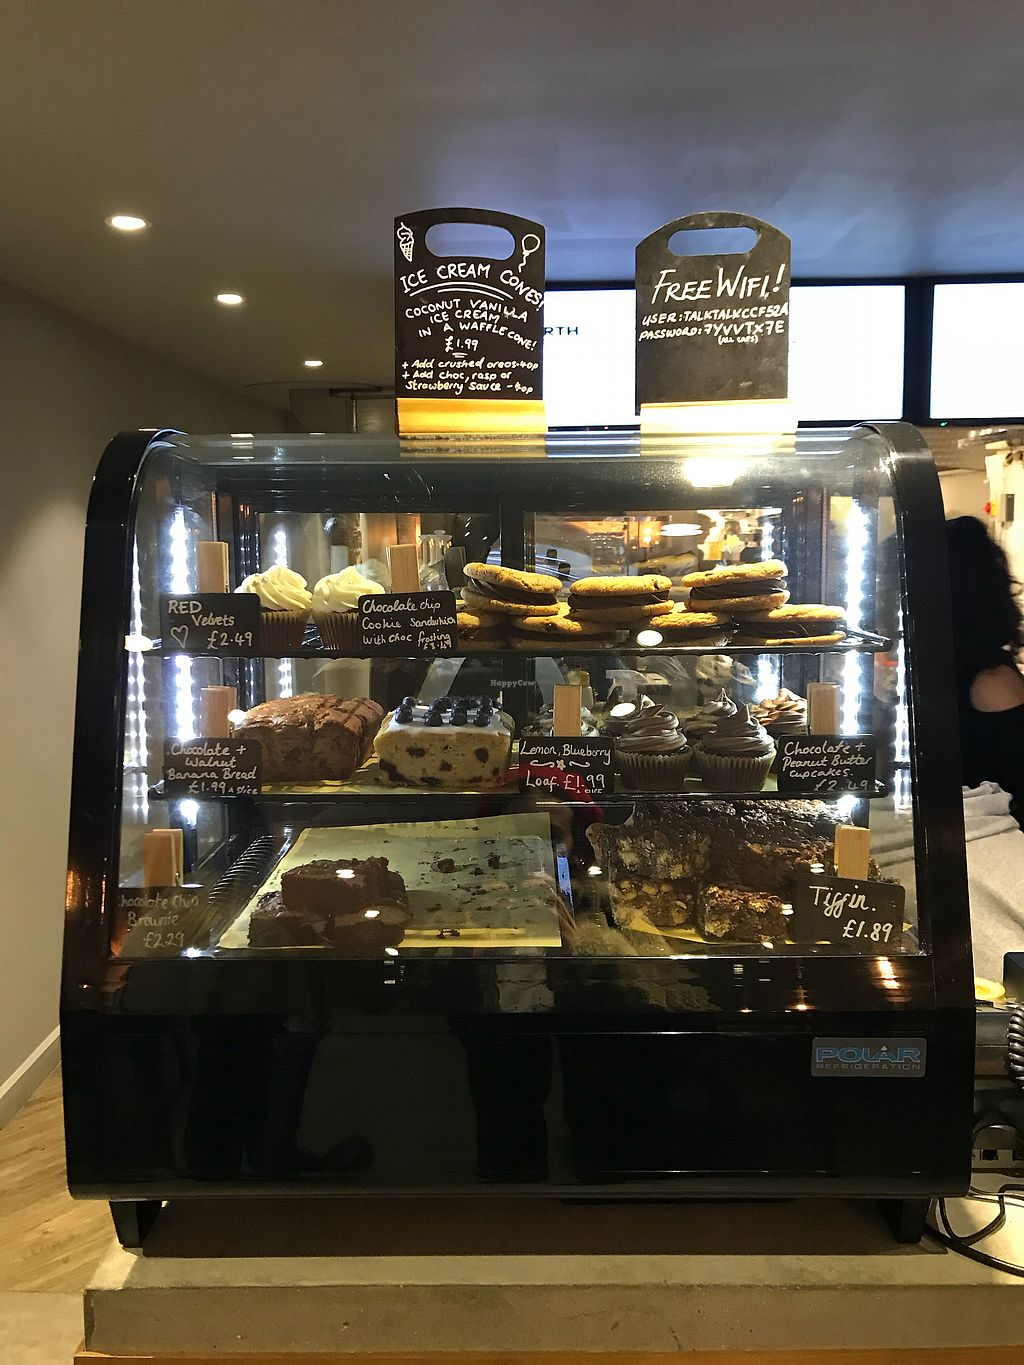 """Photo of Earth Restaurant & Takeaway  by <a href=""""/members/profile/AnaBanannaPancake"""">AnaBanannaPancake</a> <br/>Amazing selection of cakes  <br/> November 12, 2017  - <a href='/contact/abuse/image/86514/324632'>Report</a>"""